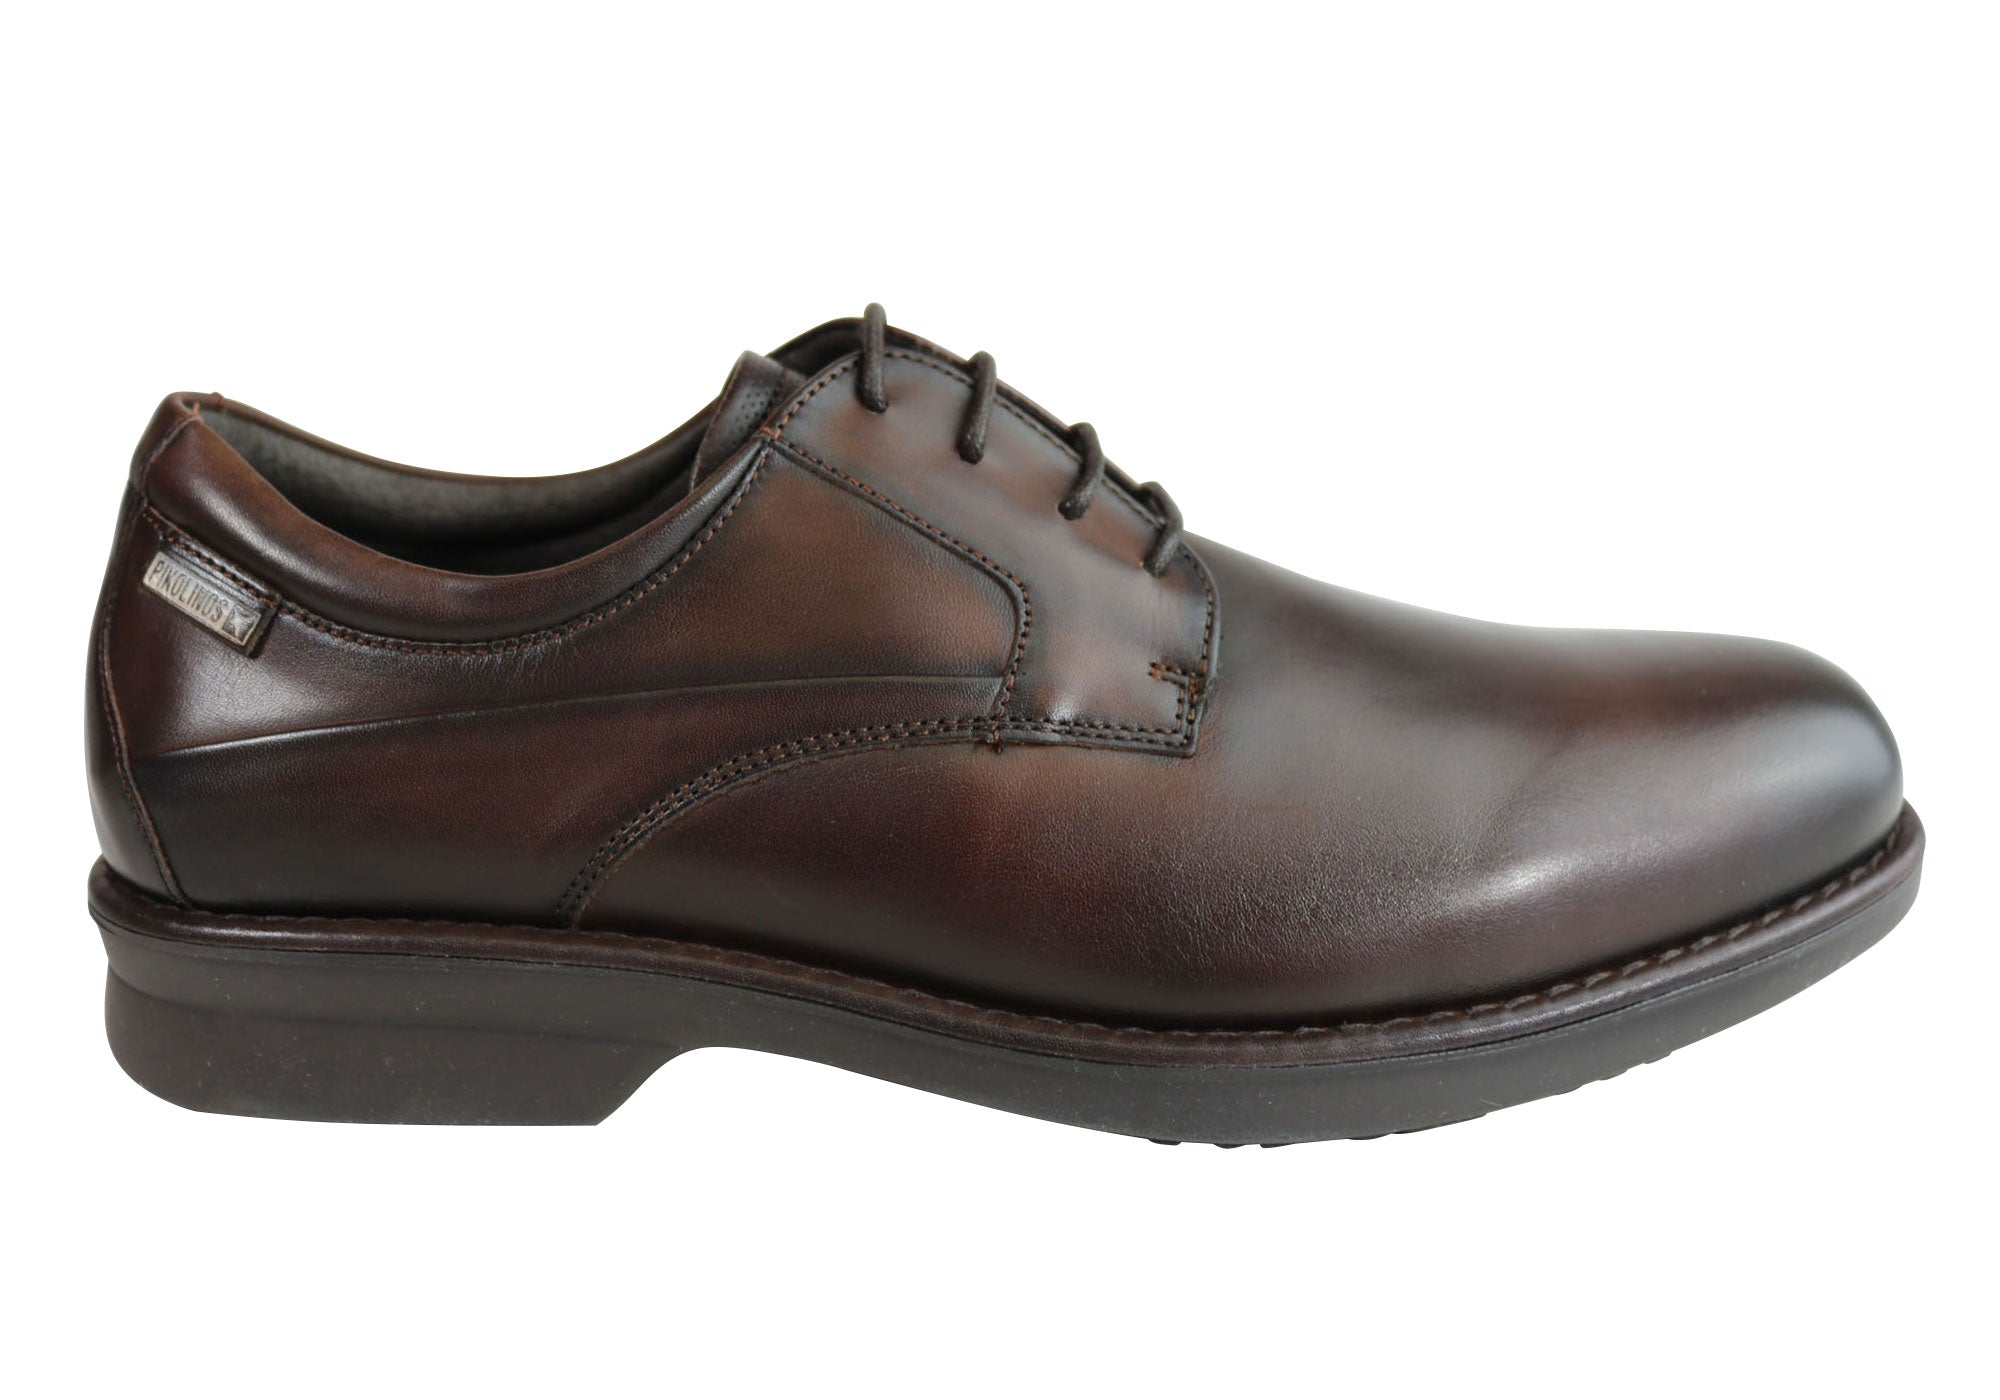 d09149e3a712e Pikolinos Dublin Mens Leather Lace Up Dress Shoes Made In Spain ...